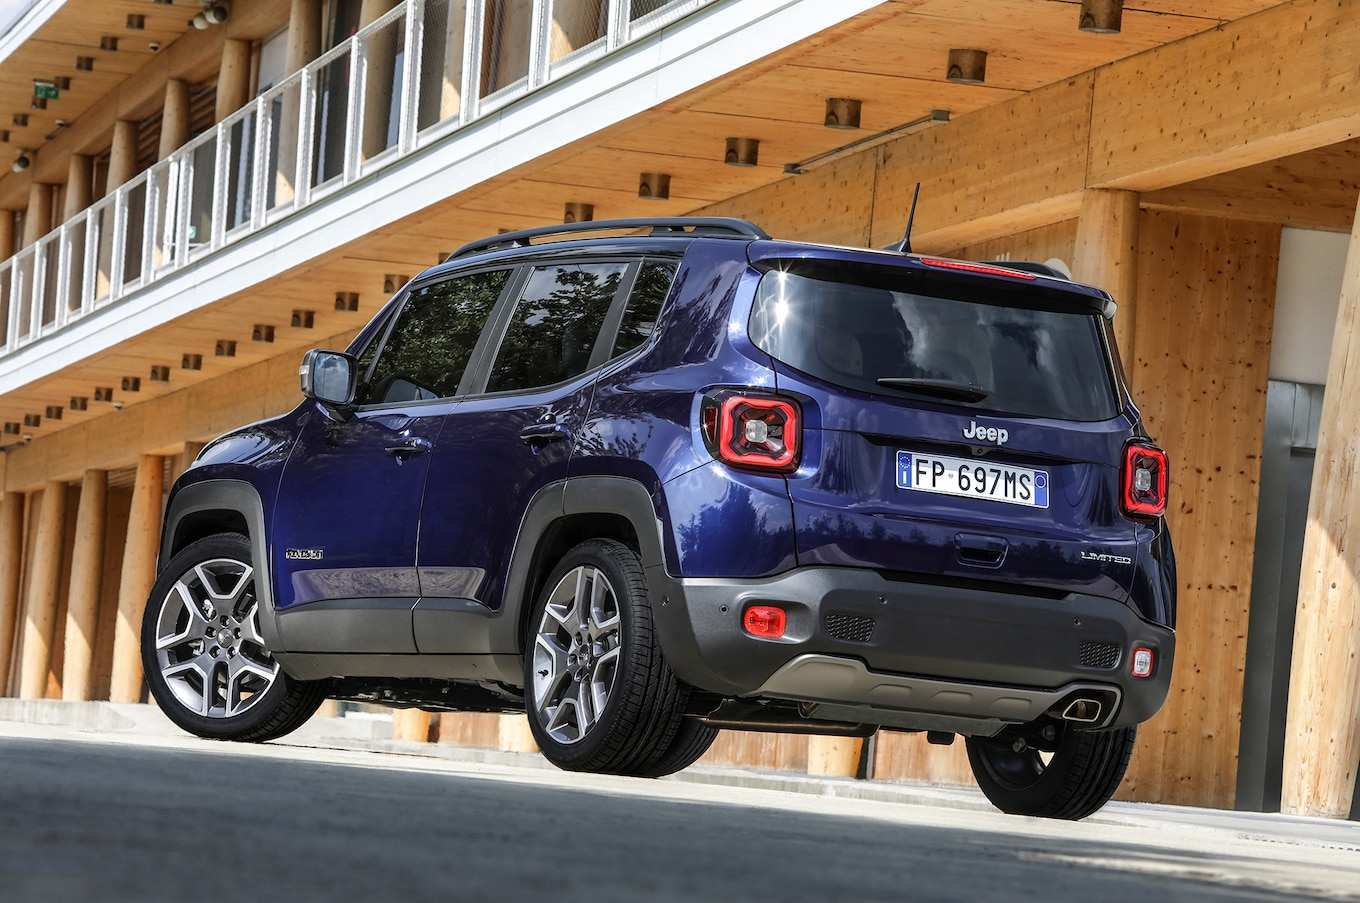 54 Great 2019 Jeep Renegade Review Configurations with 2019 Jeep Renegade Review